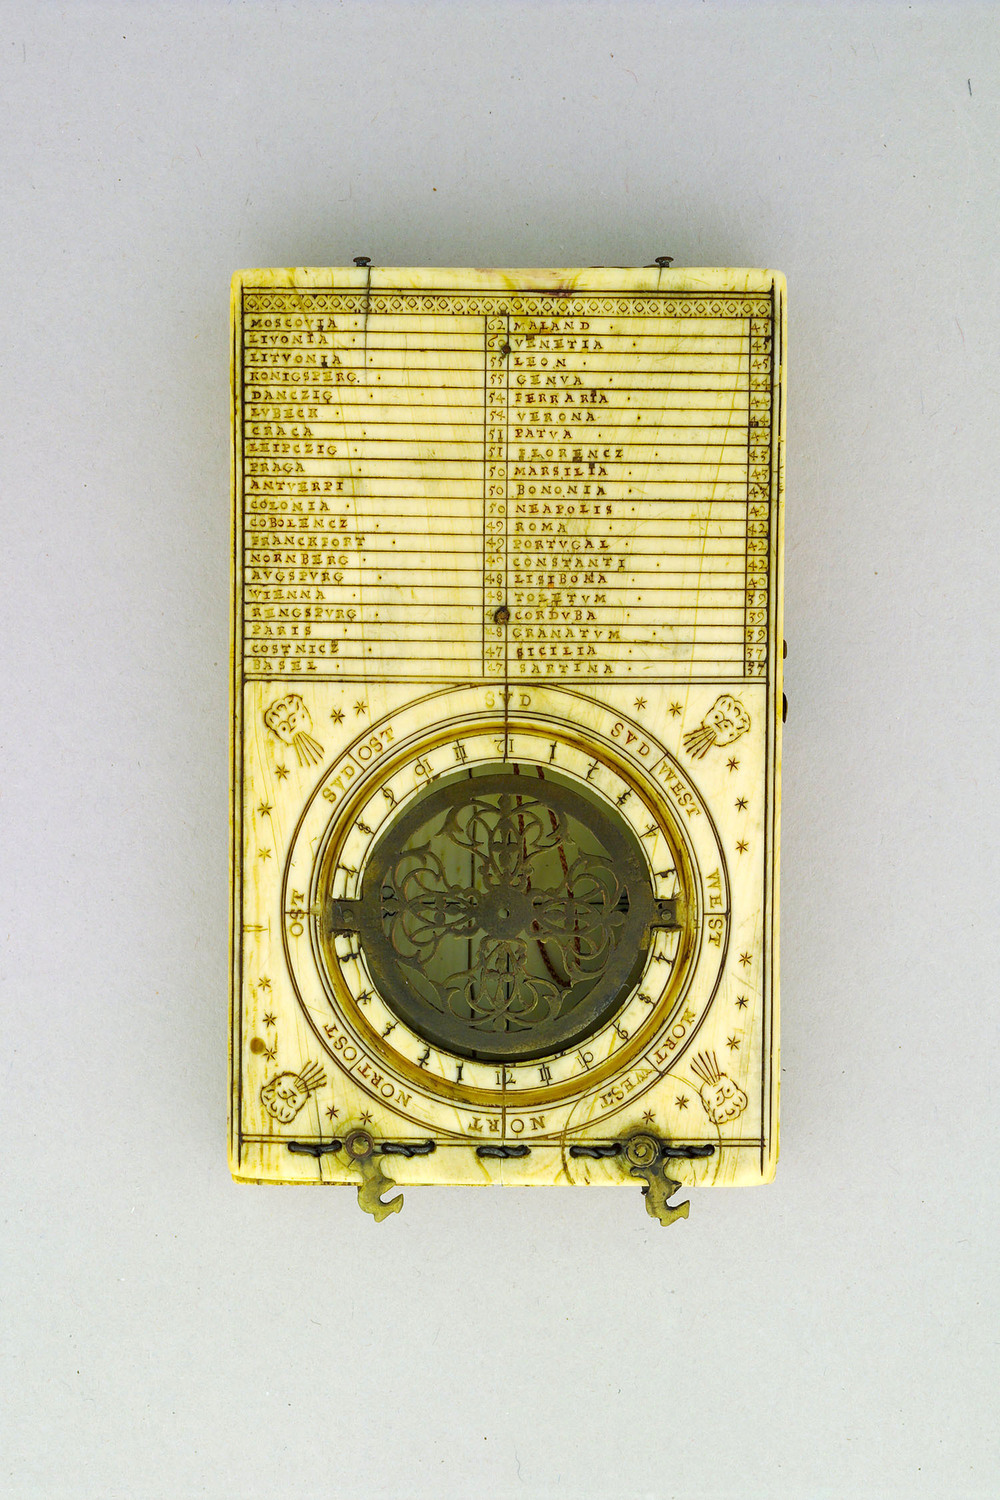 Image 1: Paul Reinmann, Diptych sundial. Nuremberg, Germany, 1595 (Adler Collection, DPW-27).